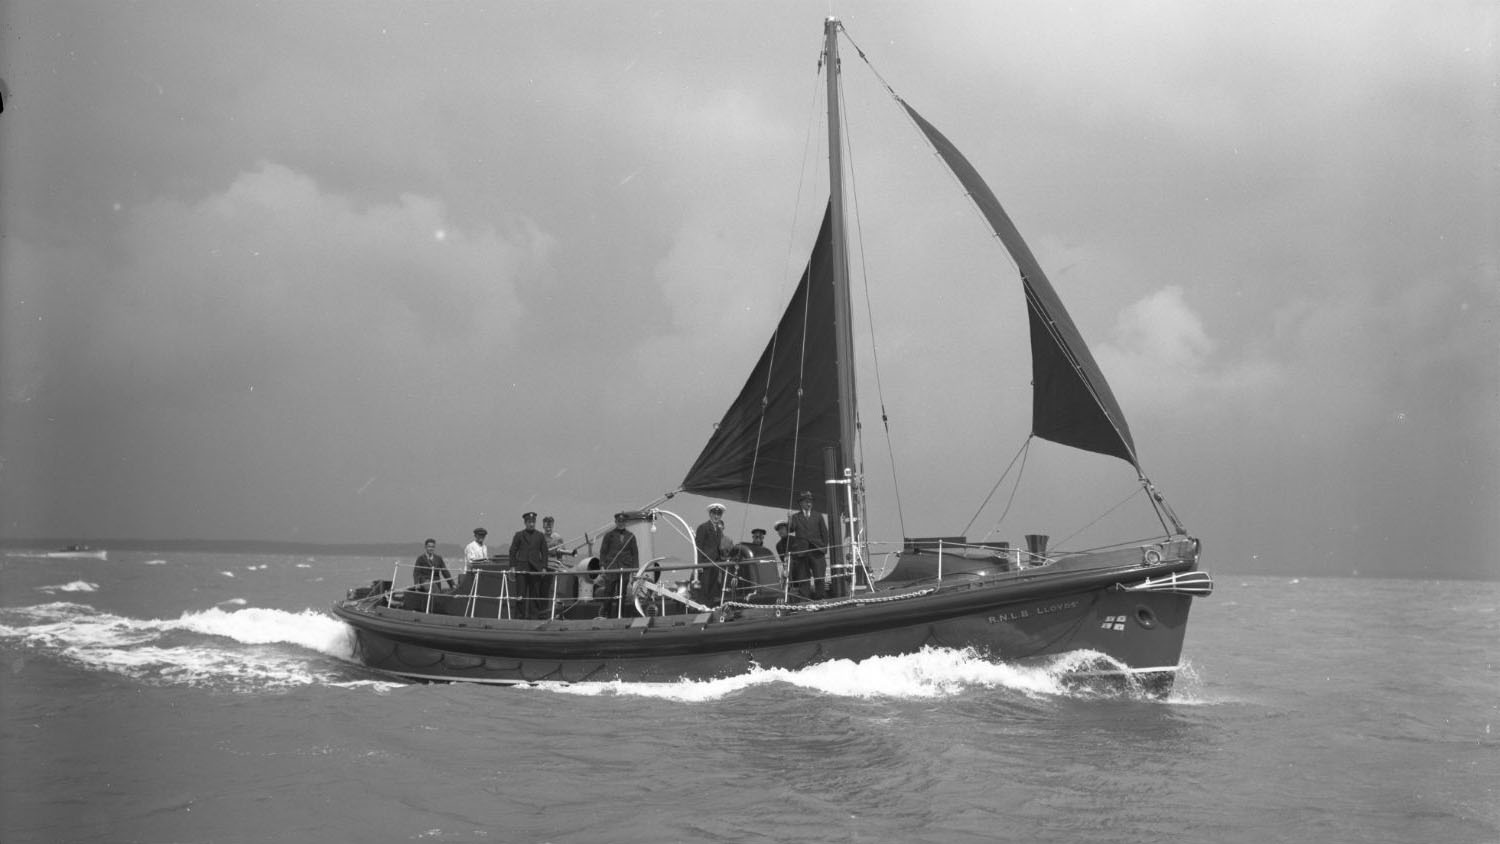 Black and white image of Barra Island lifeboat, Lloyds, while on trials